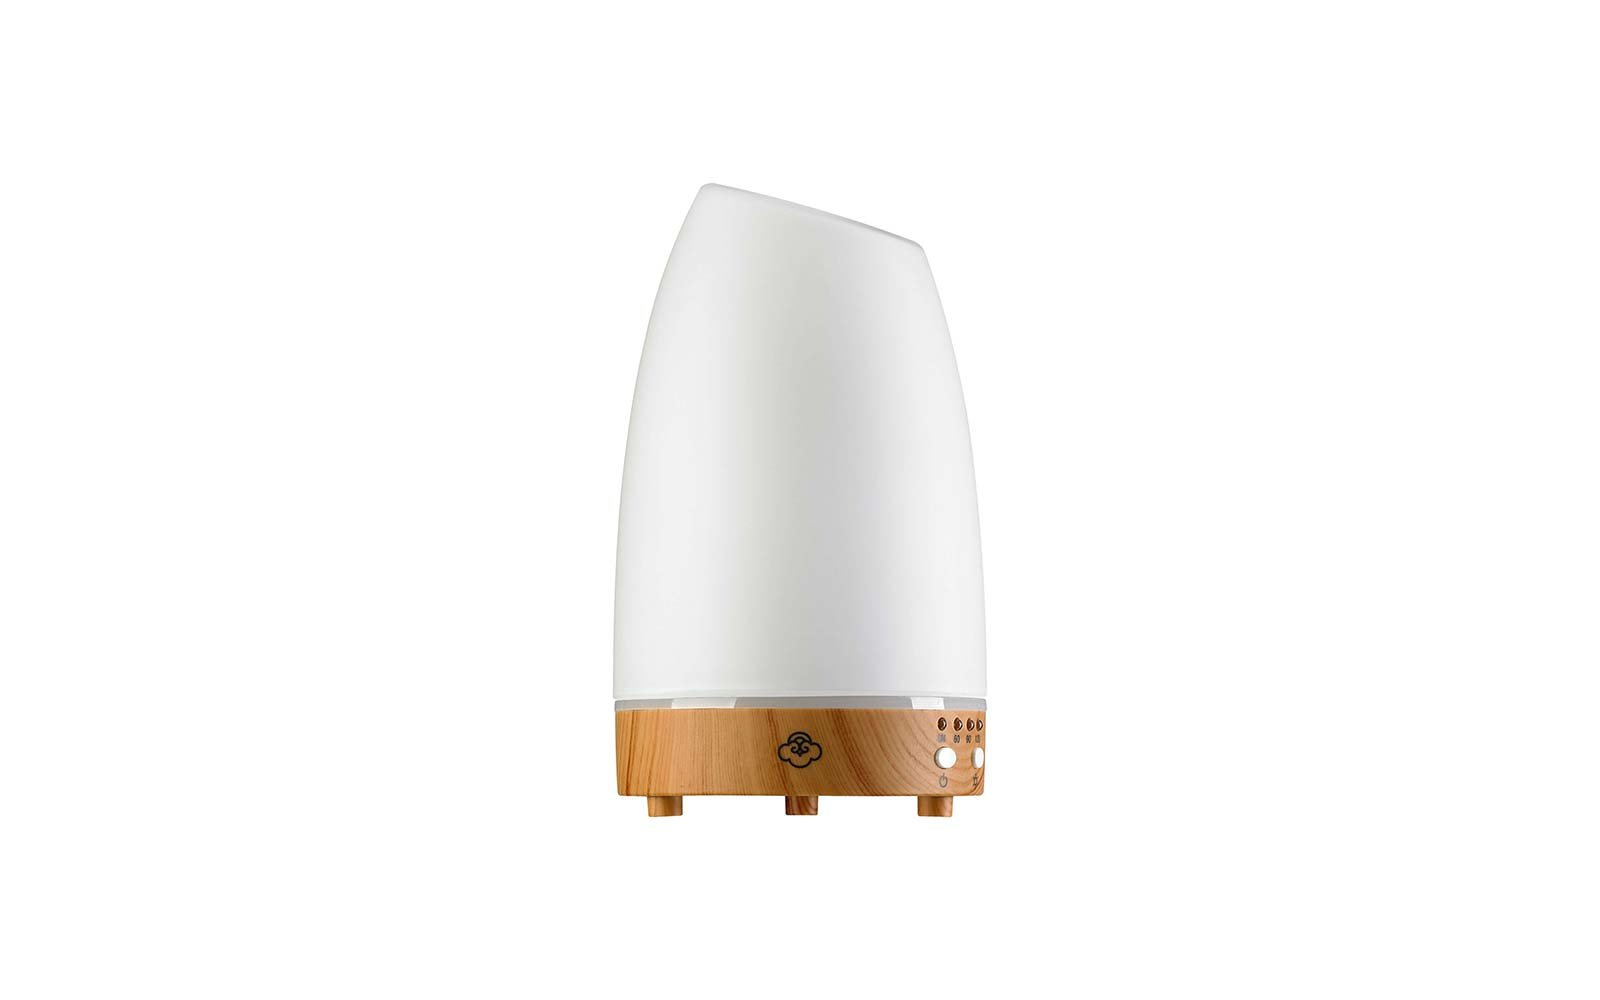 Nordstrom Beauty Sale Serene House Ultrasonic Cool Mist Aromatherapy Diffuser